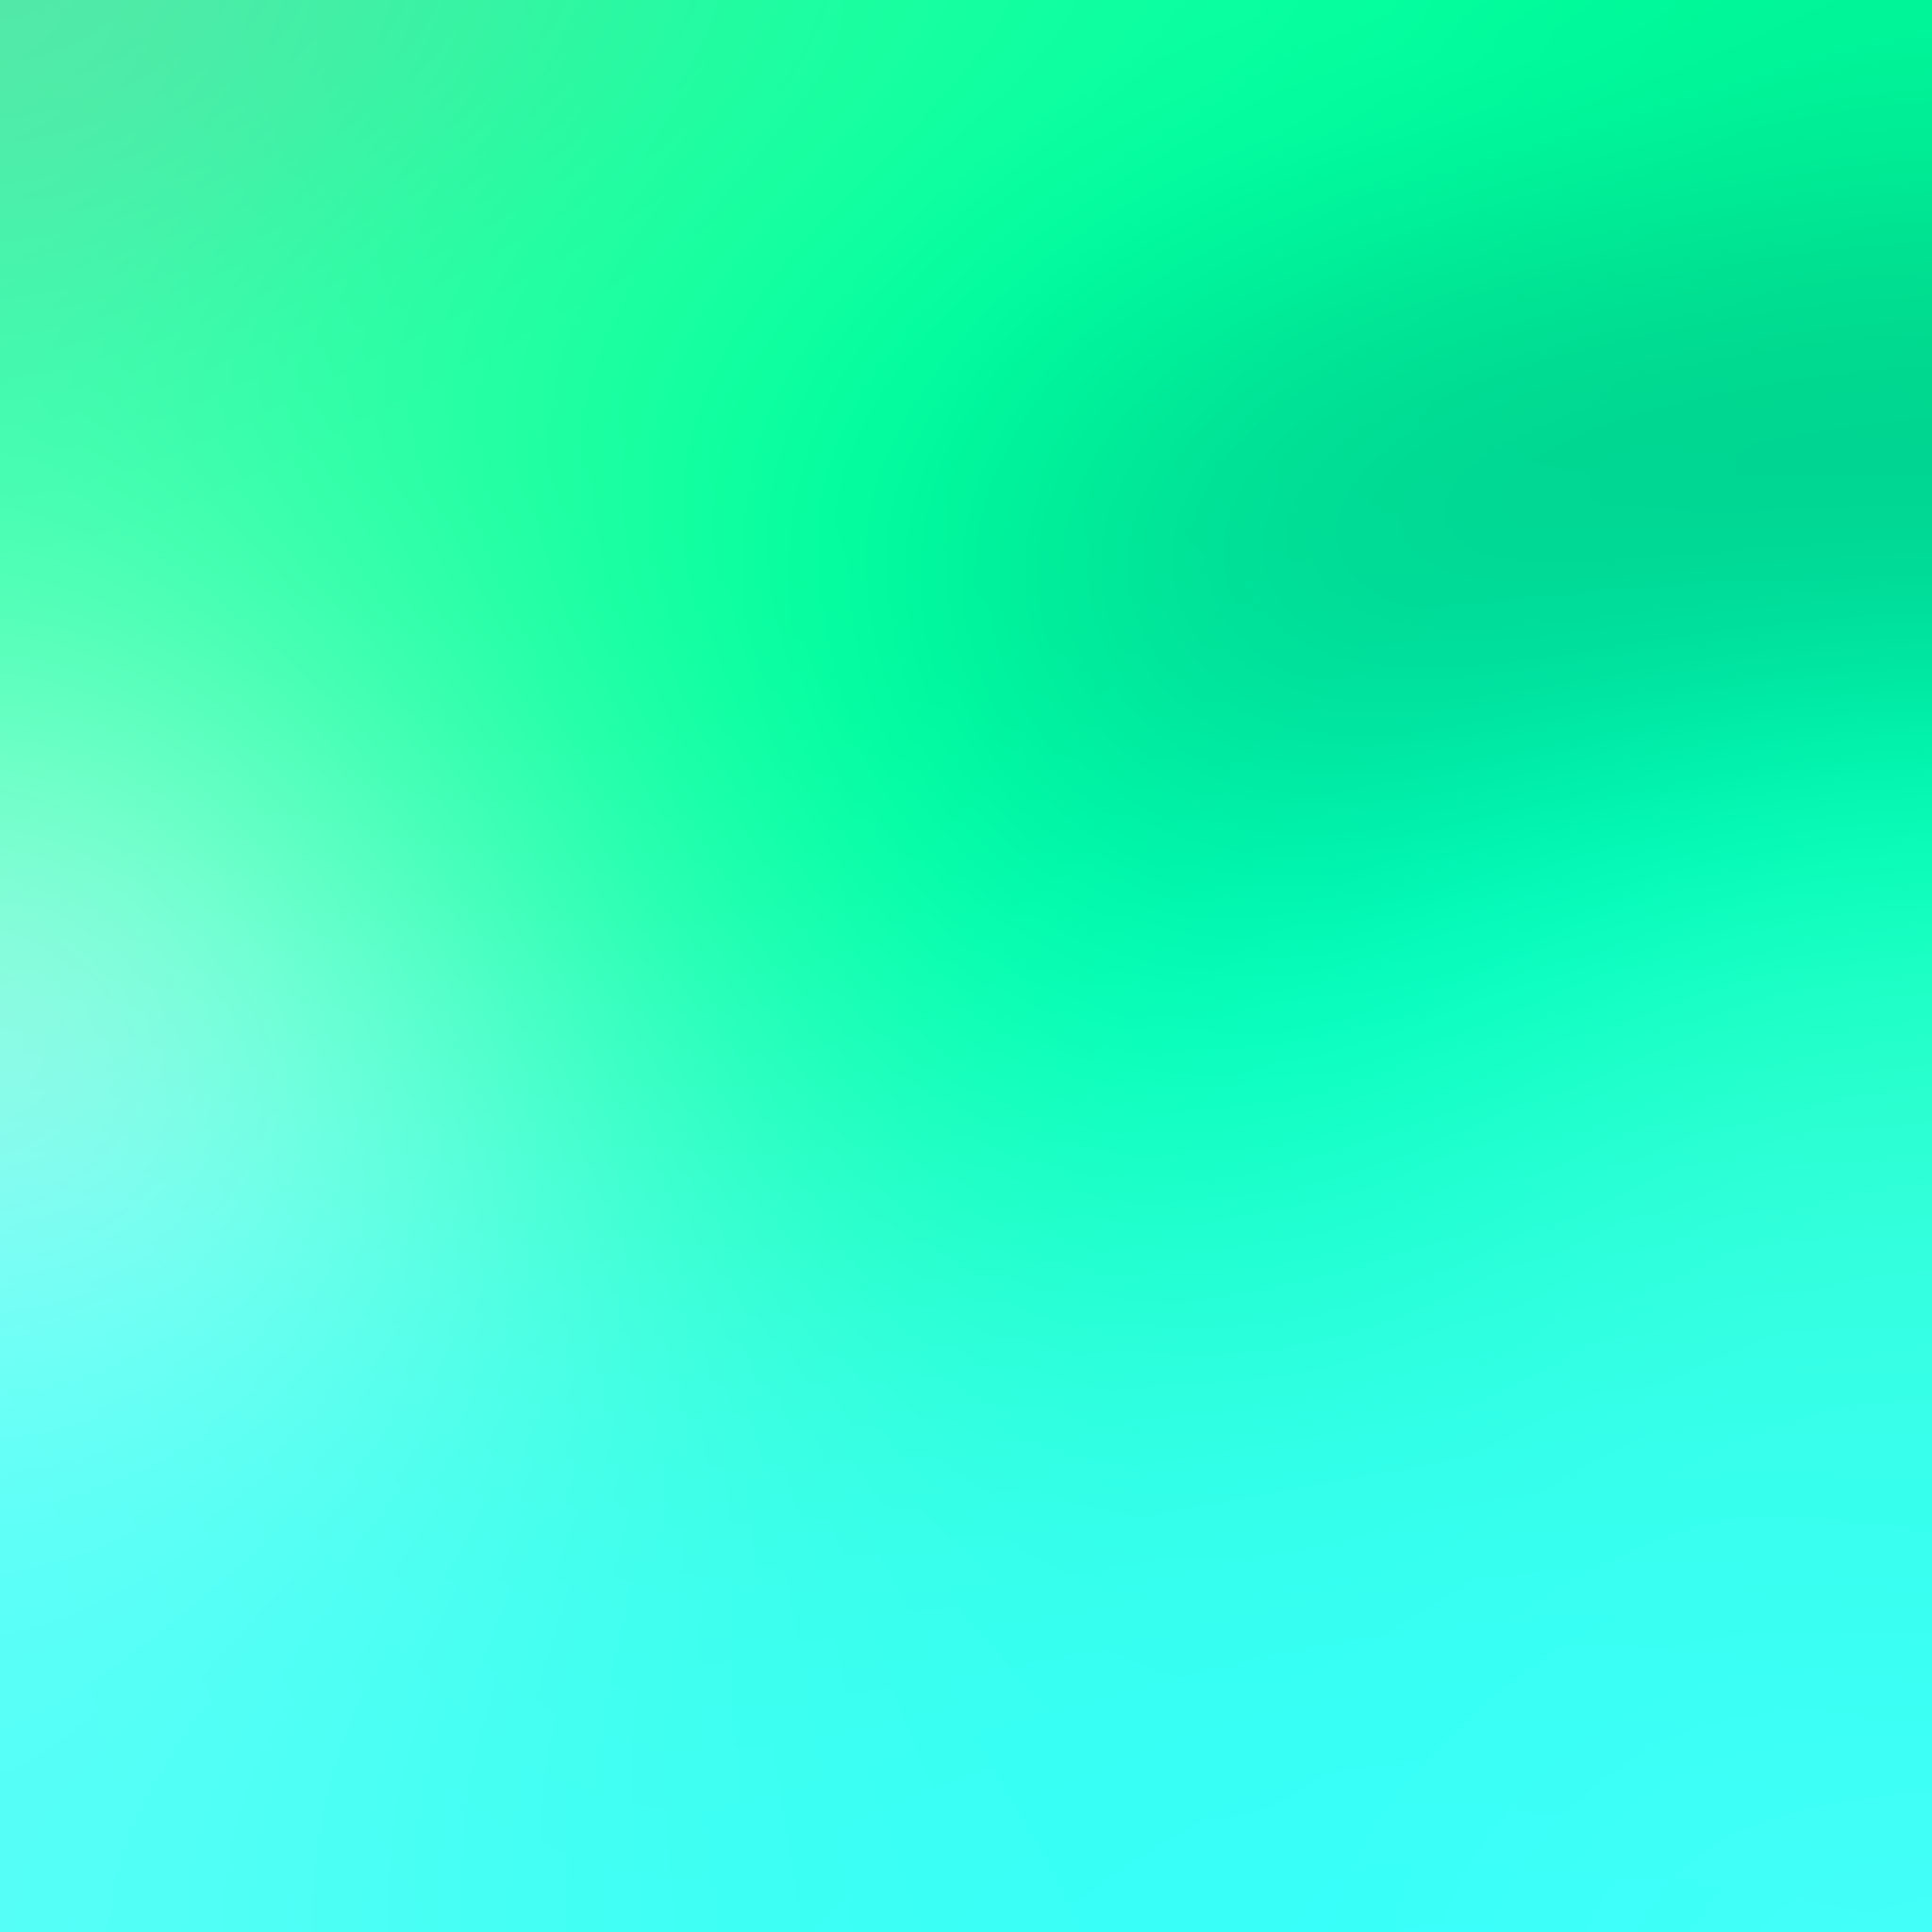 2048x2048 Bright Green Wallpaper Page 1